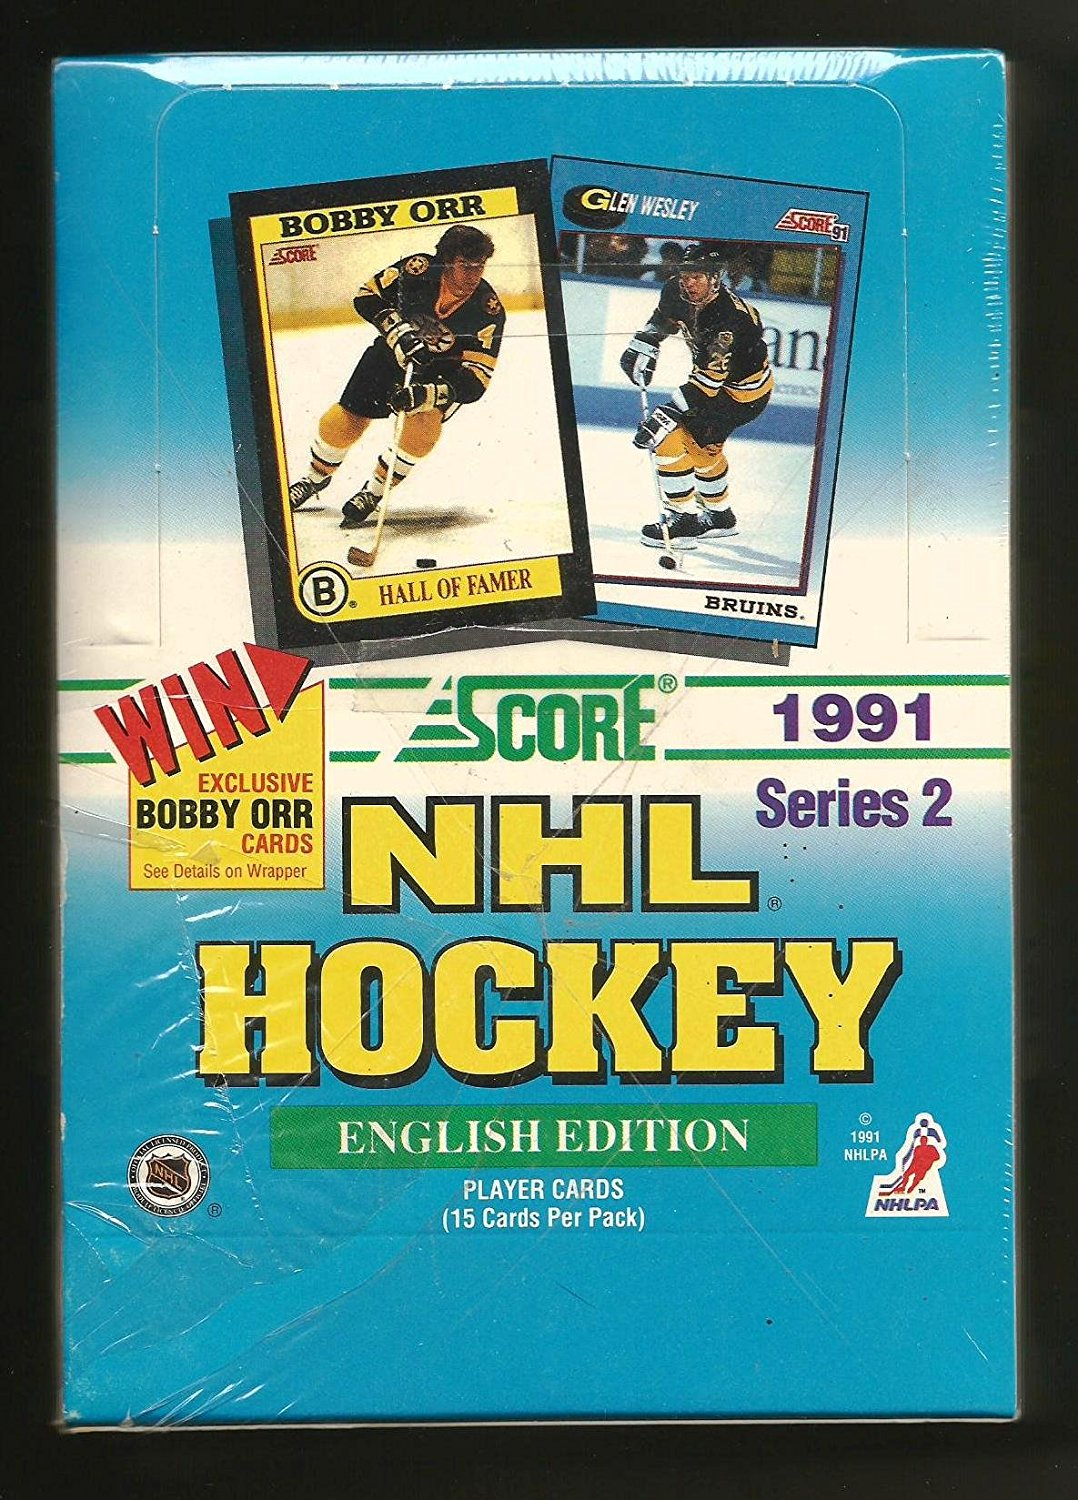 1991 92 Canadian English Series 2 Hockey Hobby Box, Brand New in original factory-sealed... by